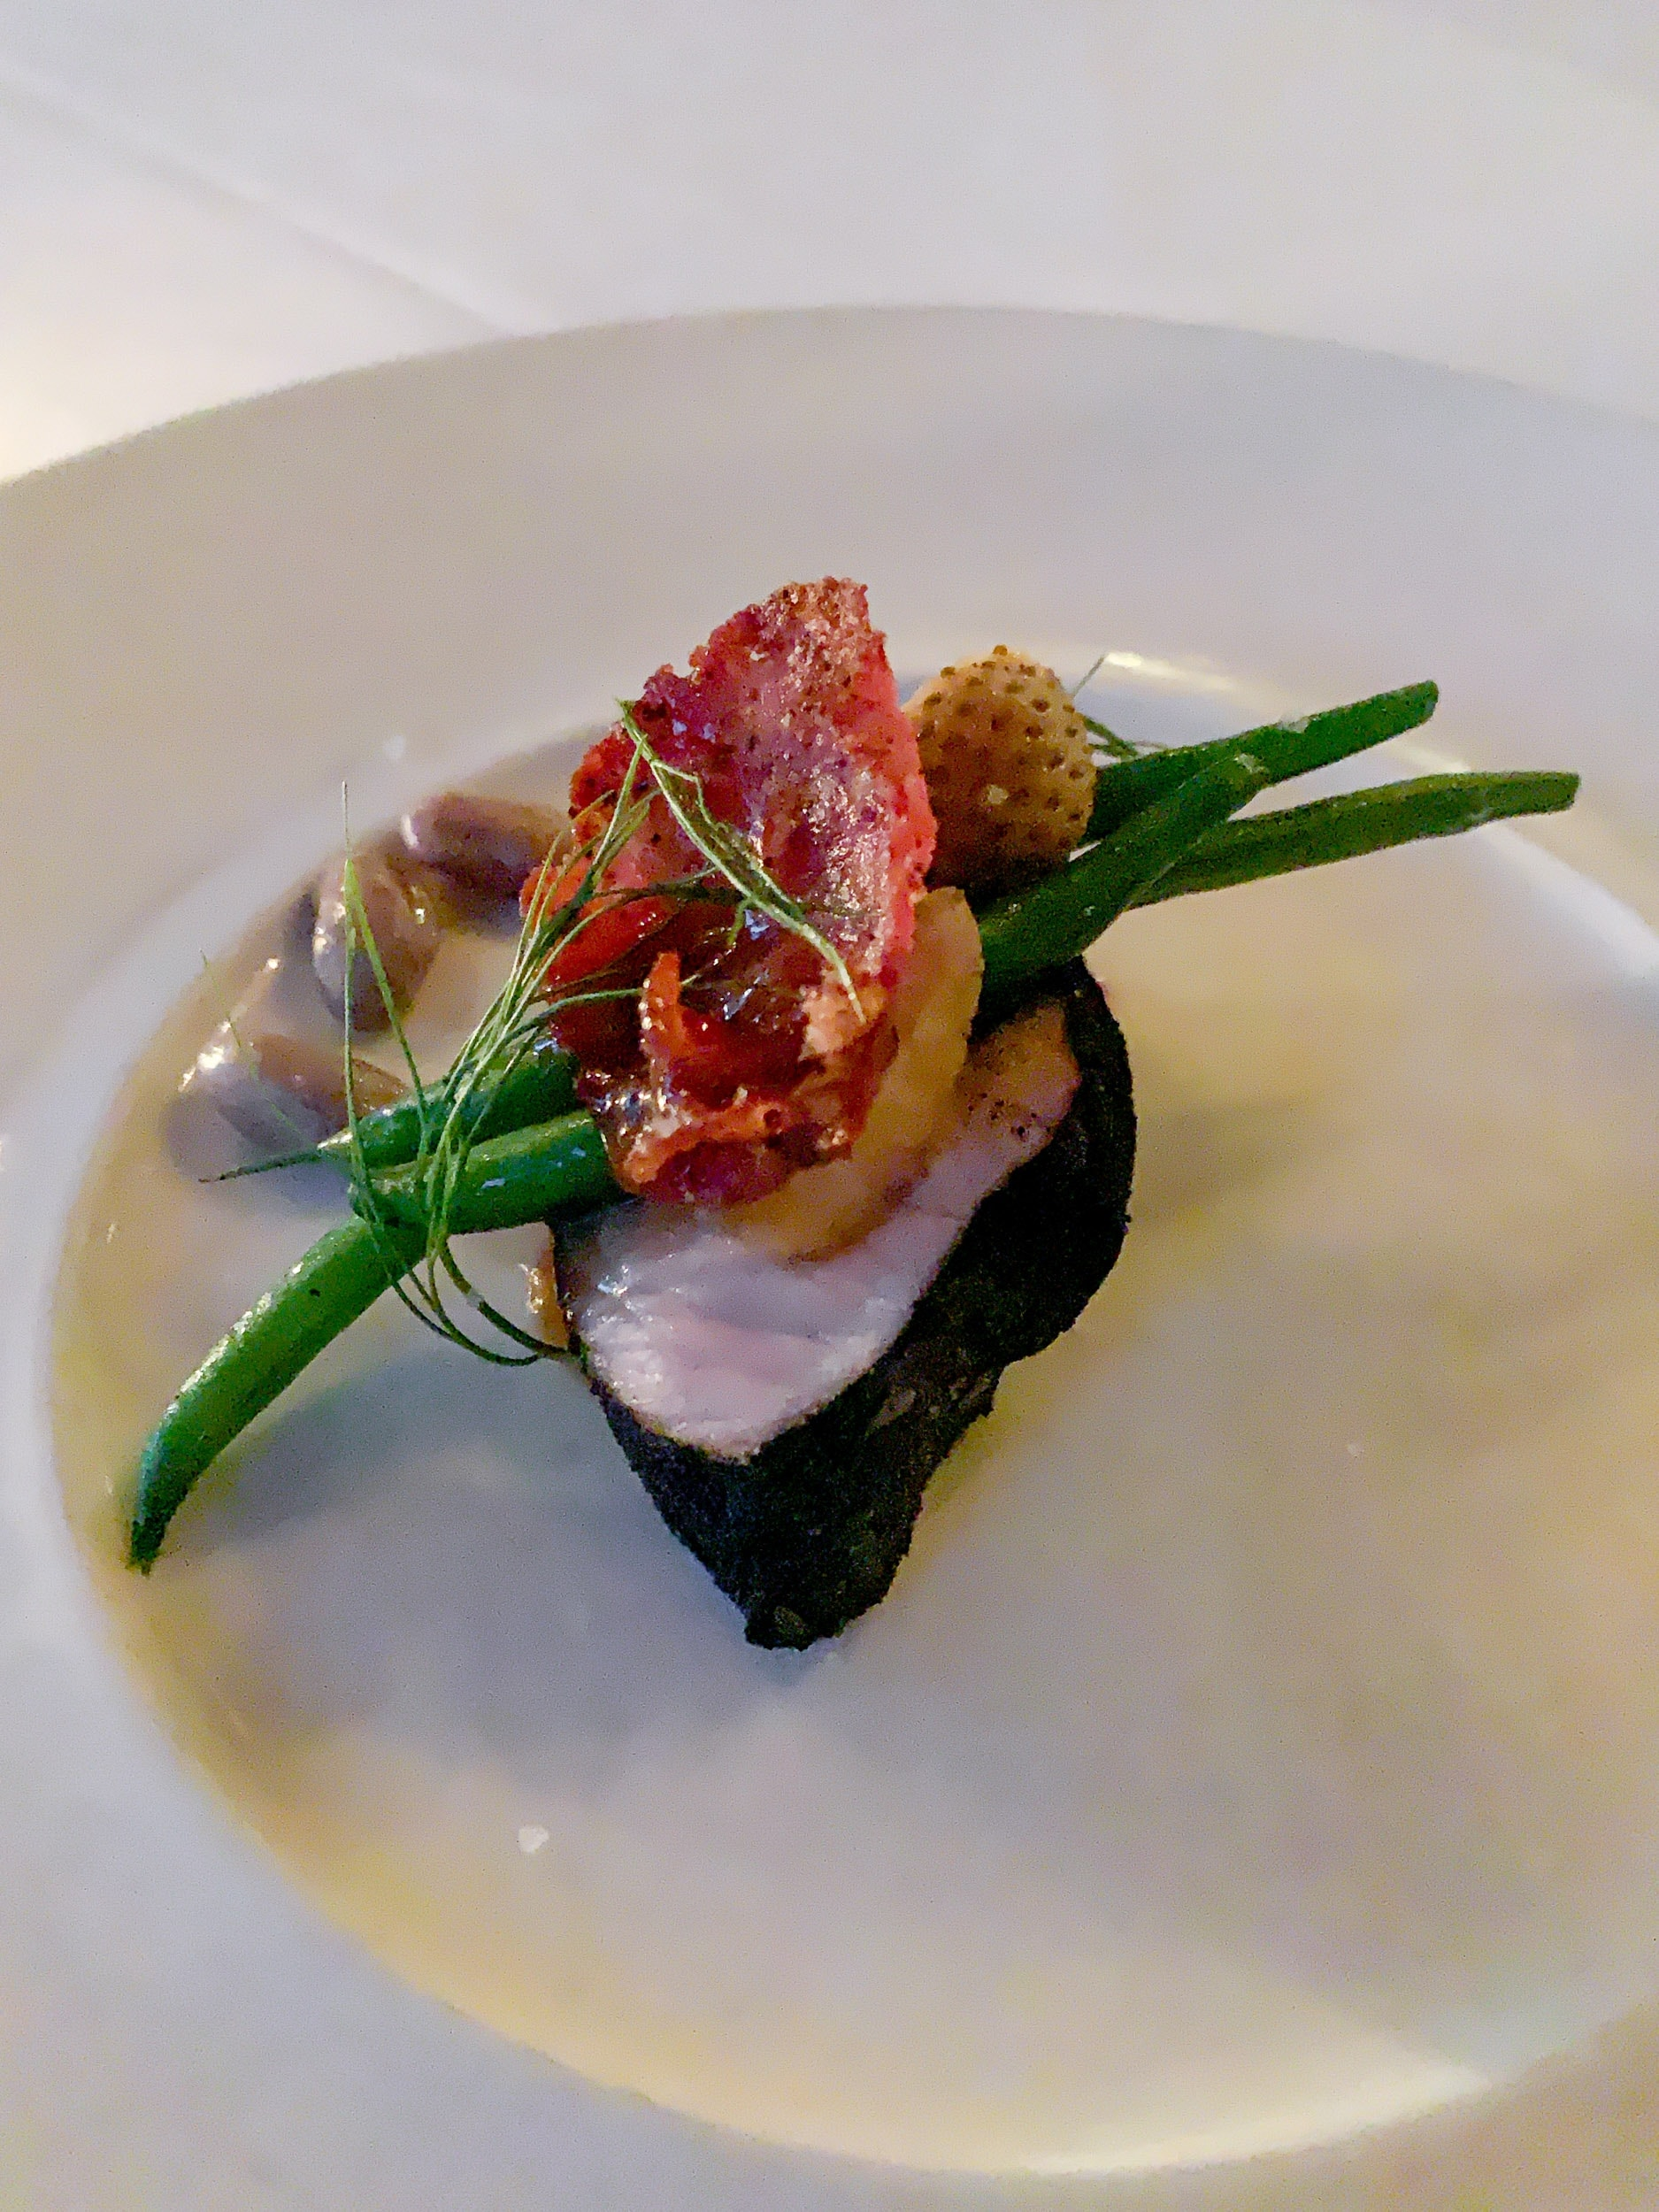 Berkshire pork loin with pickled strawberry, pole beans, and summer sausage